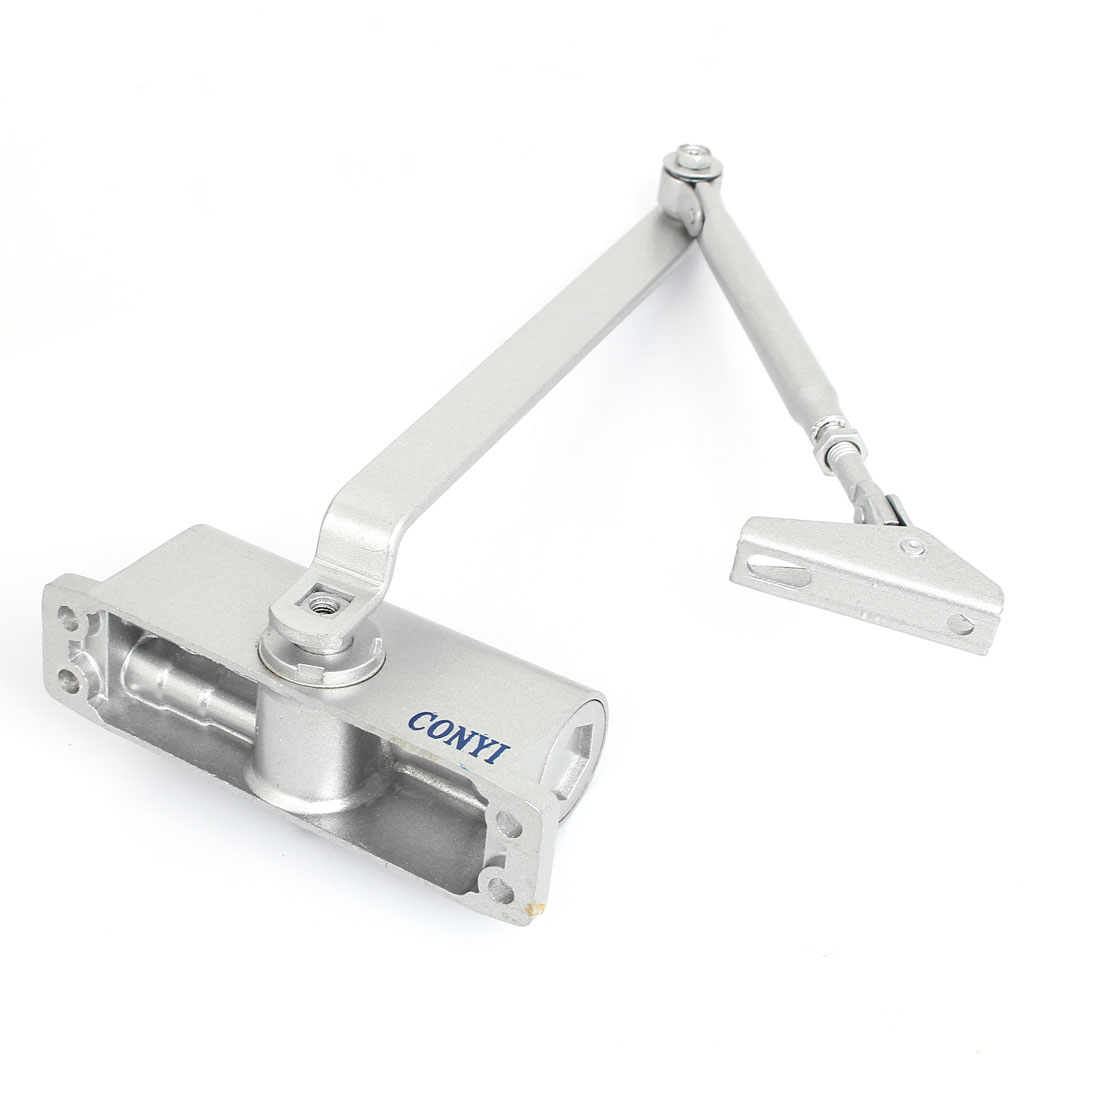 Door Closer Two Independent Valves Control Sweep Silver Tone